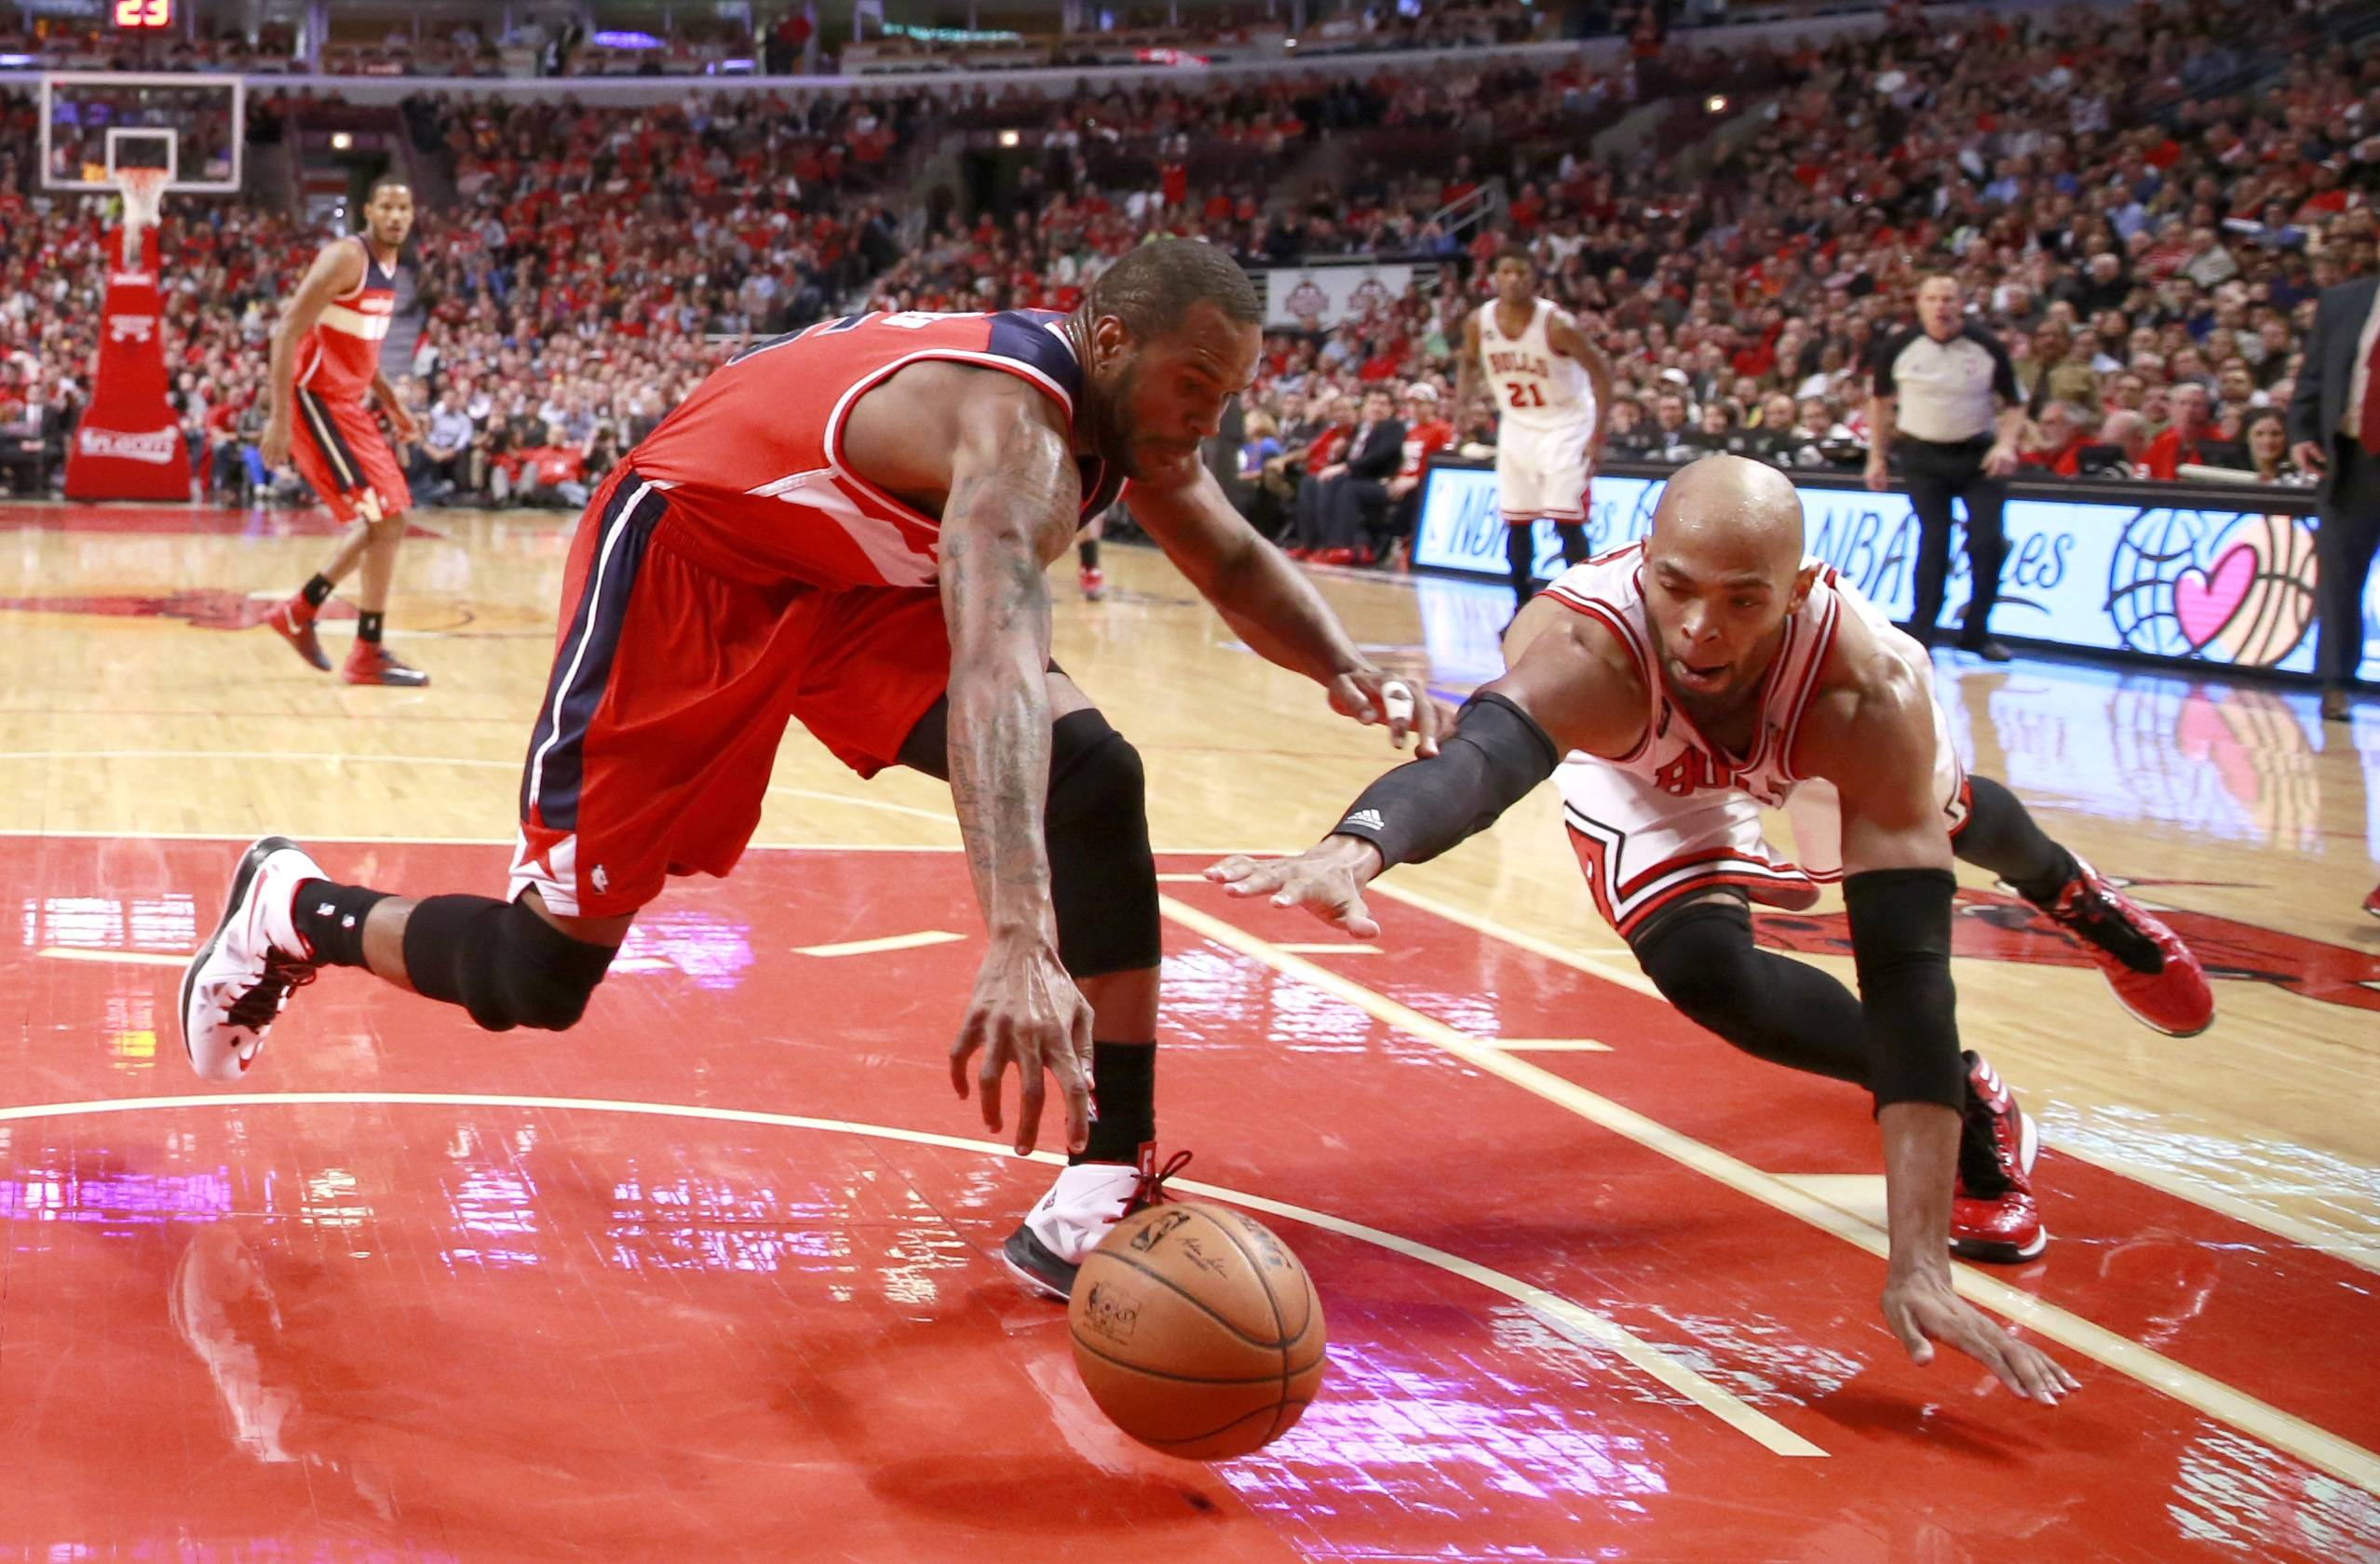 Bulls fall in OT to Wizards, trail 2-0 in series